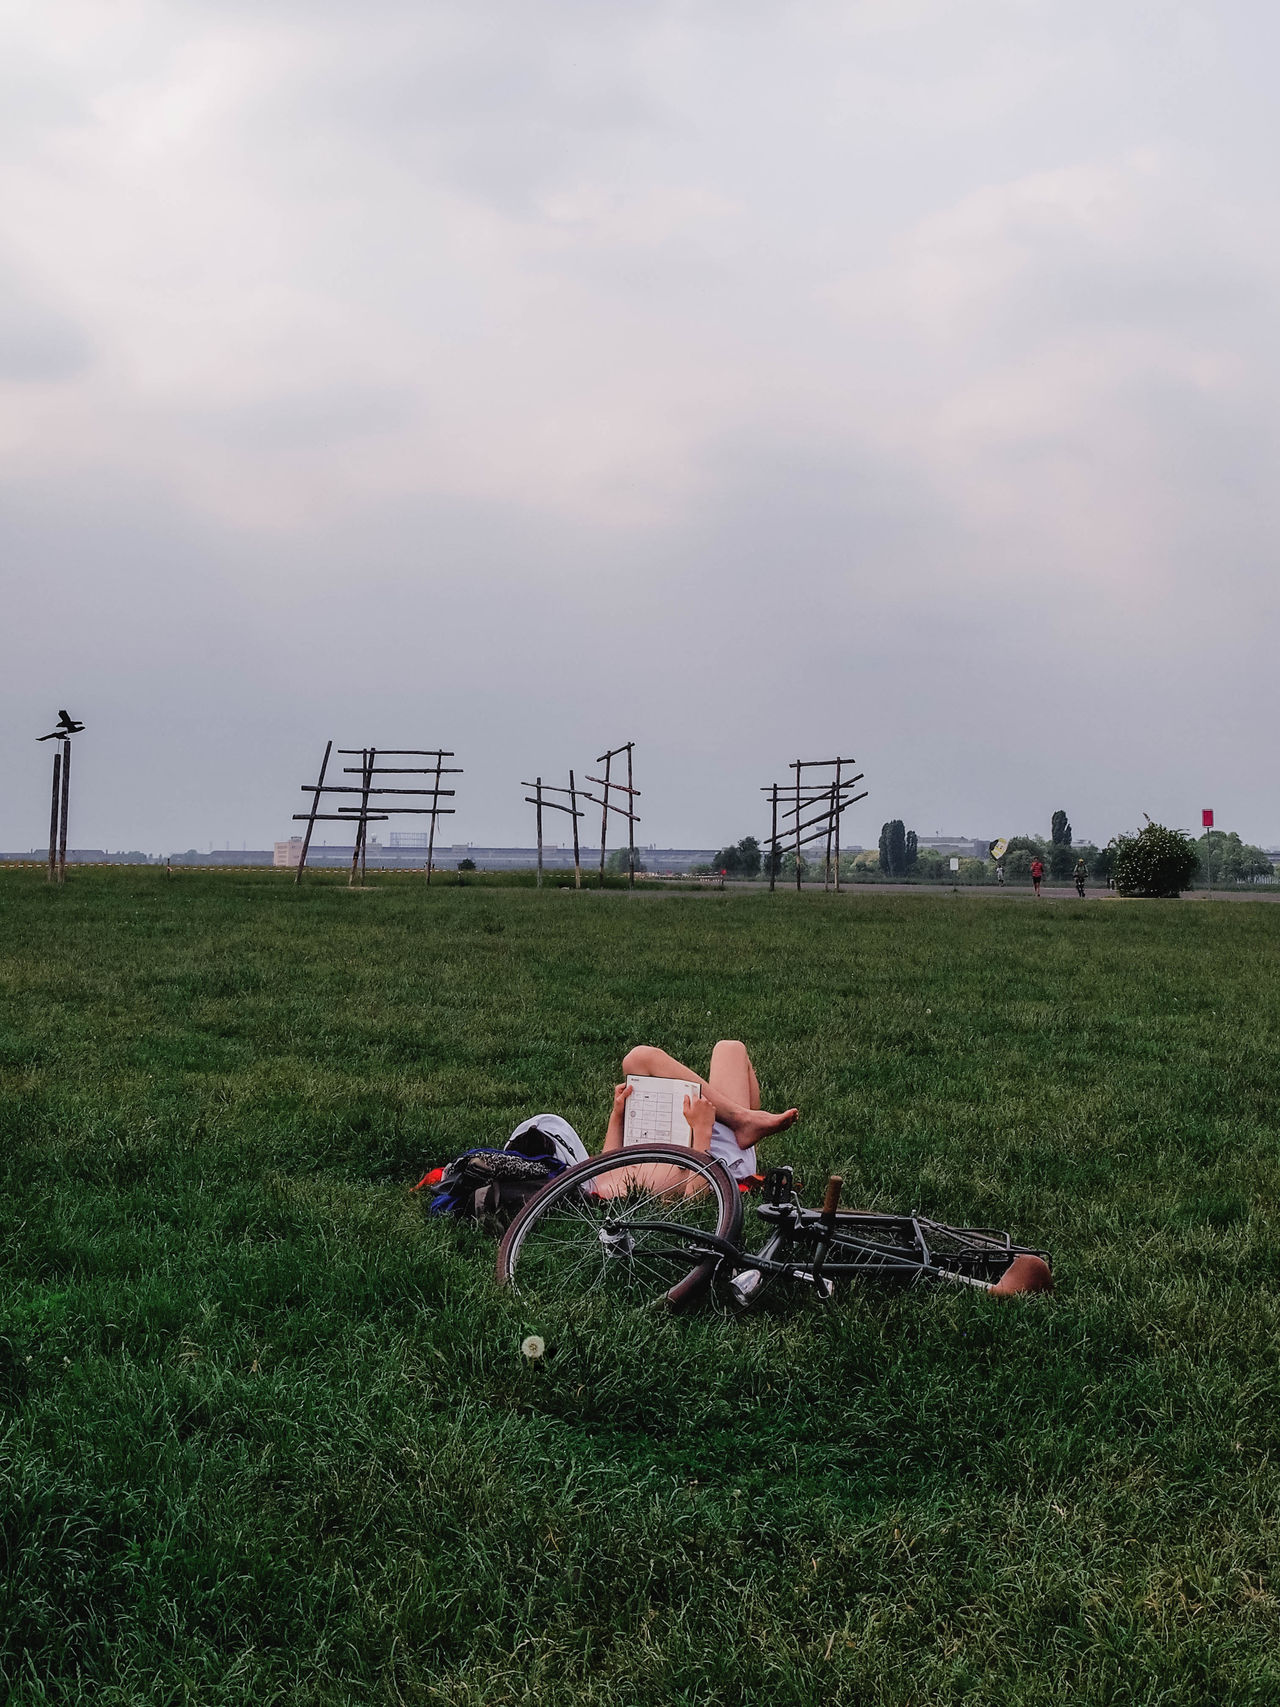 Recharge from your alone time. Berlin Bird Chill Cloudy Day Europe Germany Outdoors Park People People Watching Read Relaxing Relaxing Moments Tempelhofer Feld Weekend EyeEmNewHere